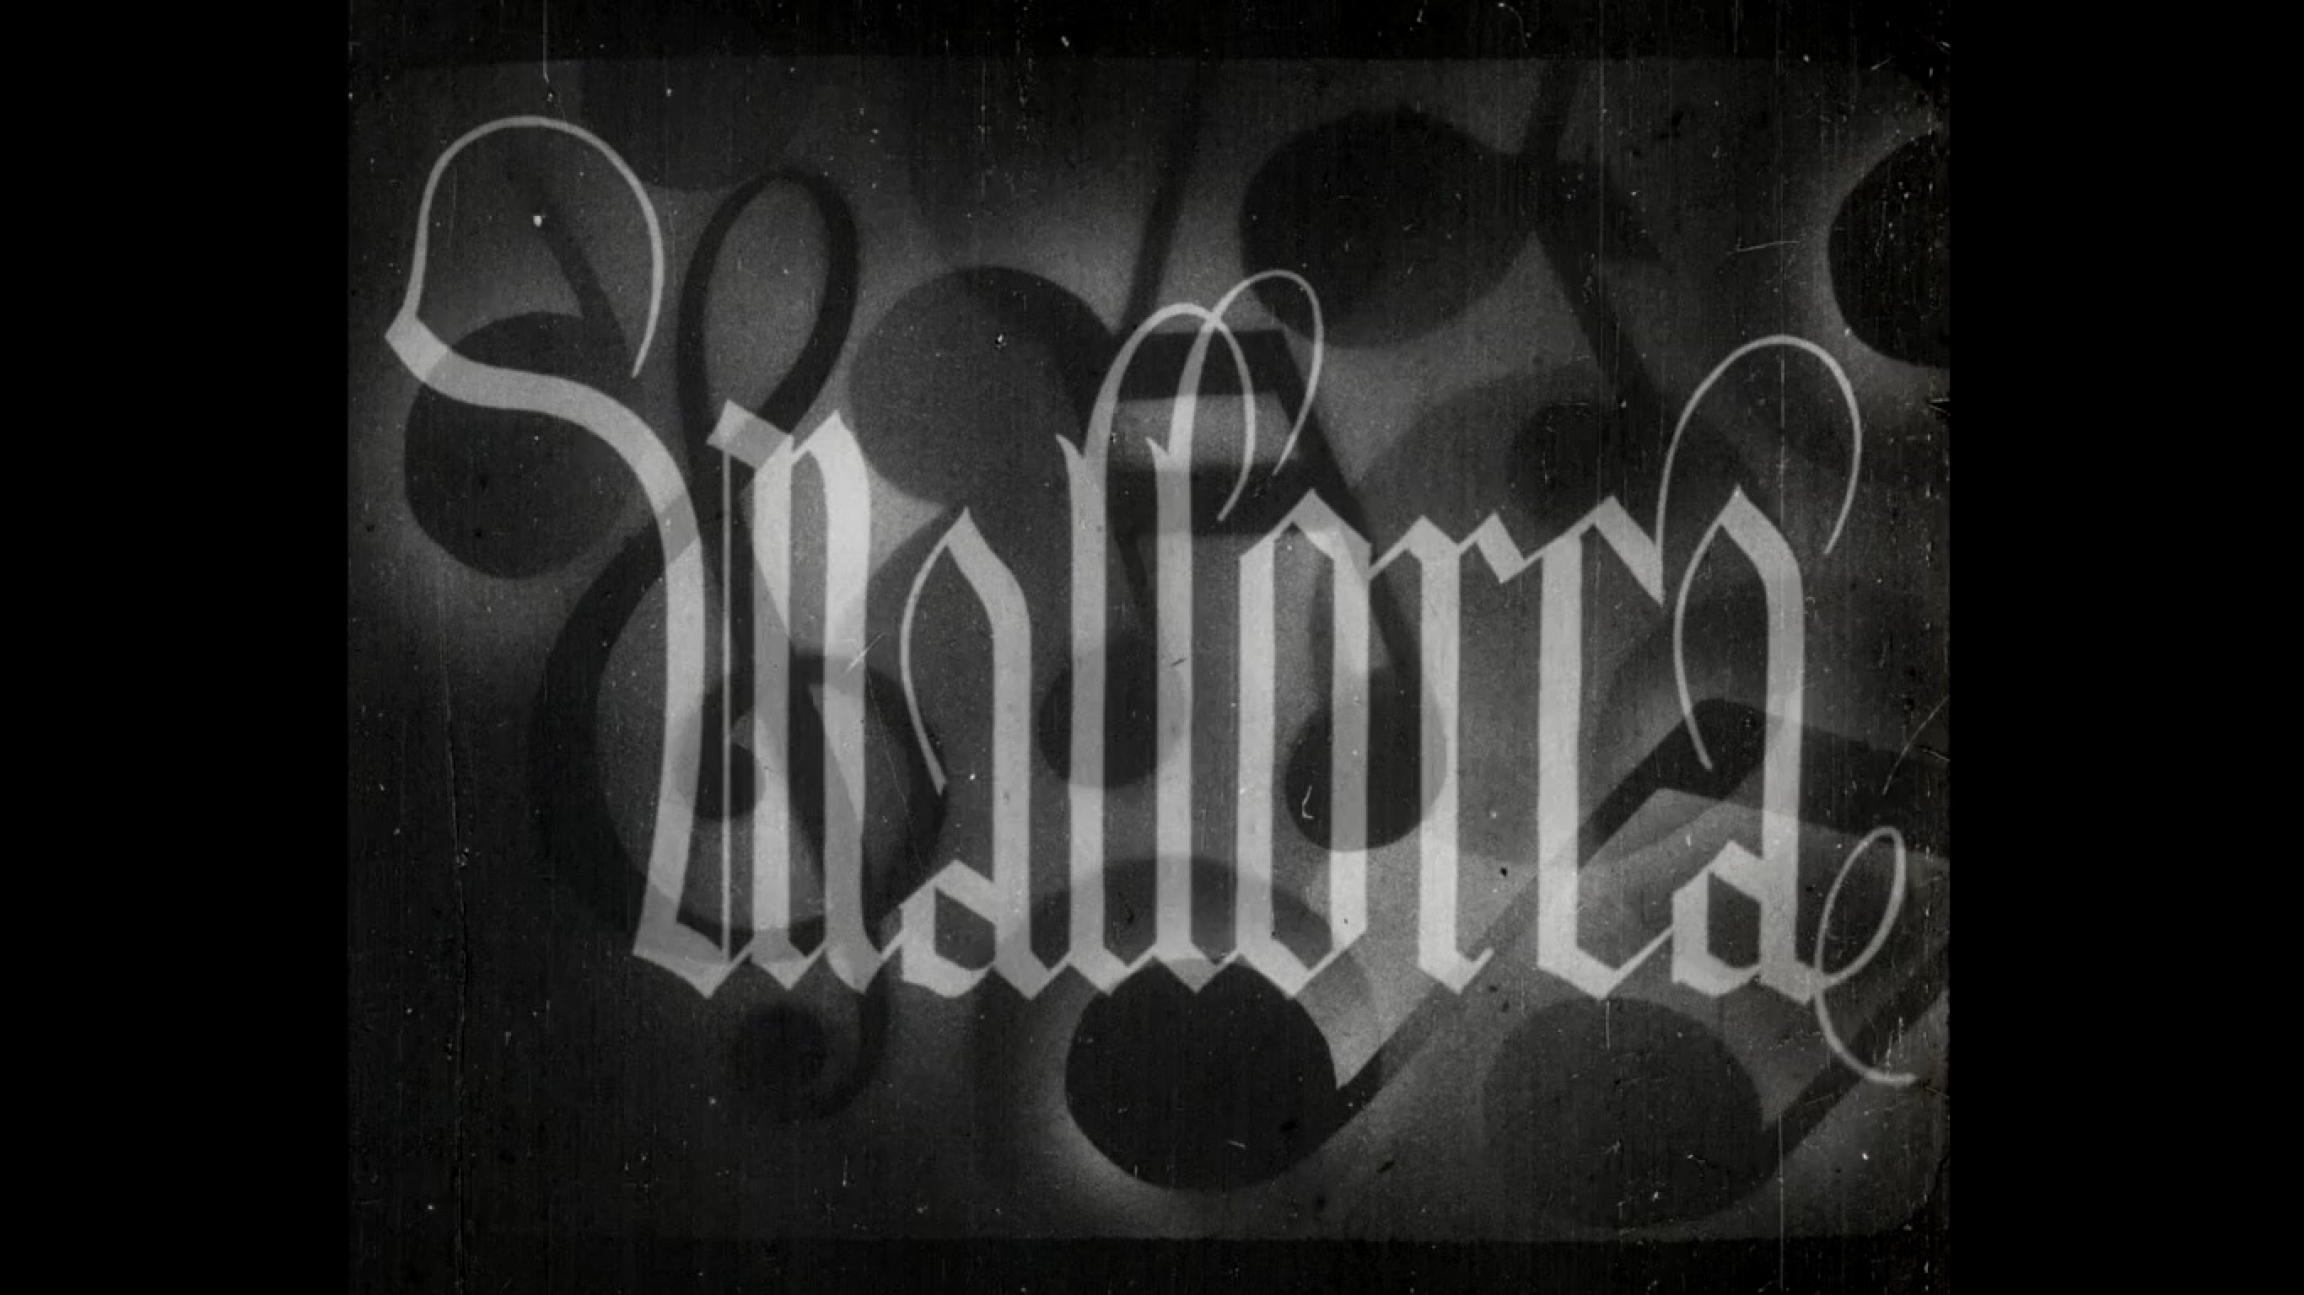 The word Mallorca in gothic lettering in black and white